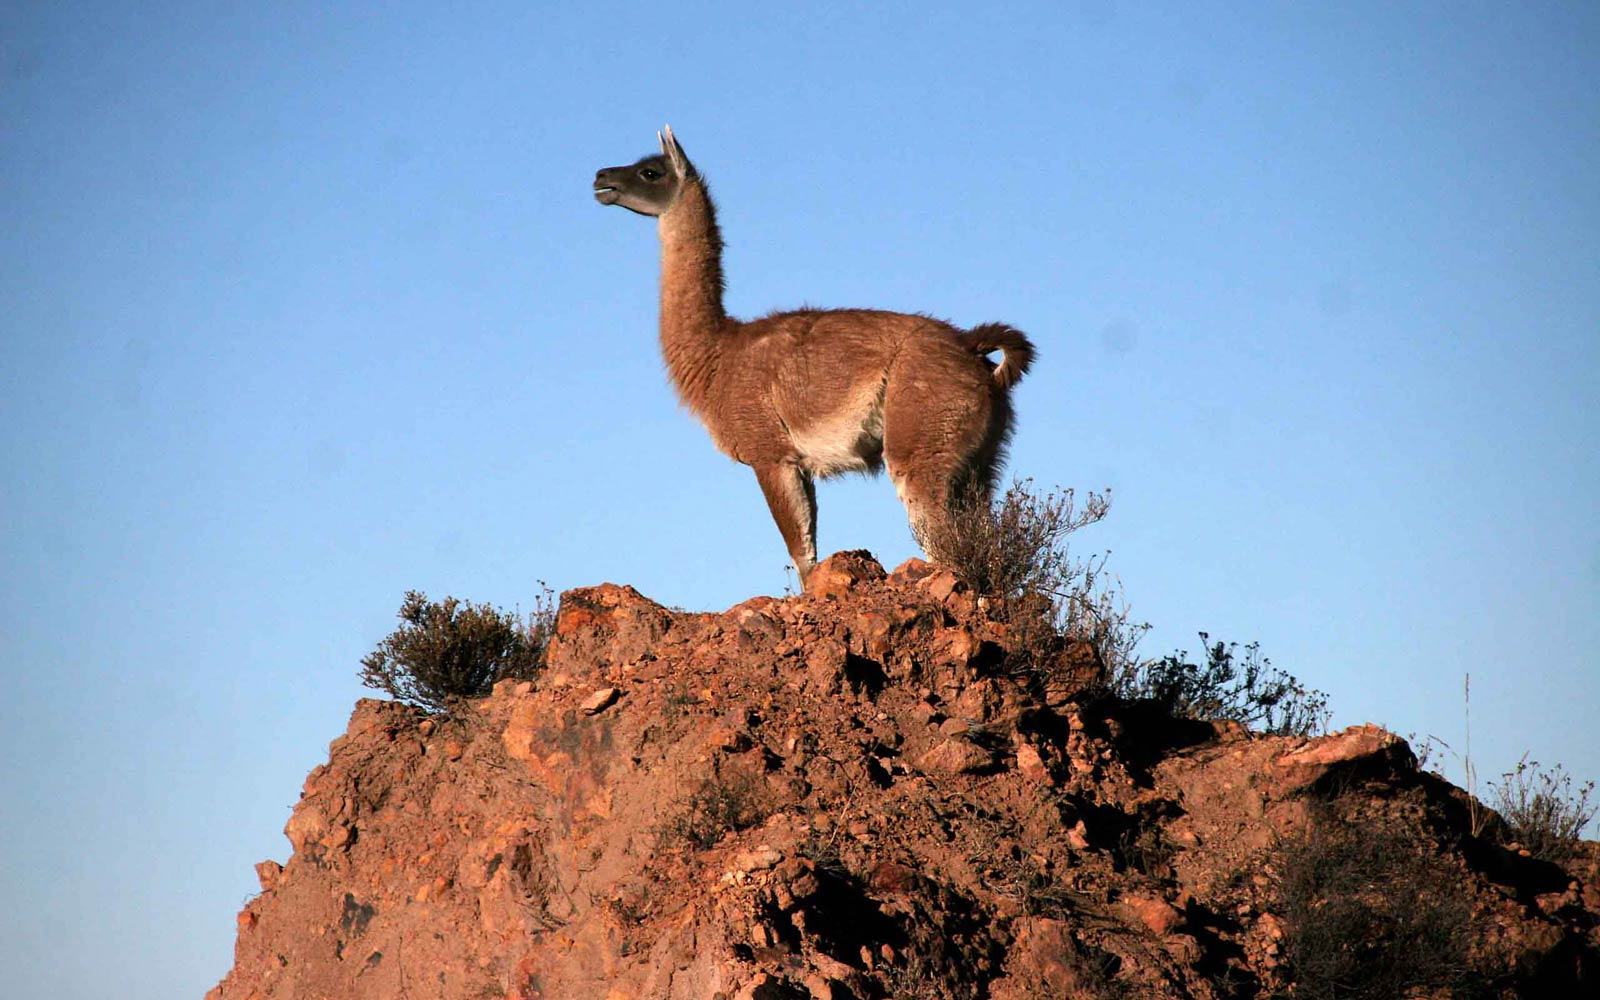 Www Hd Animal Wallpaper Com Vicuna Wallpapers Animals Town